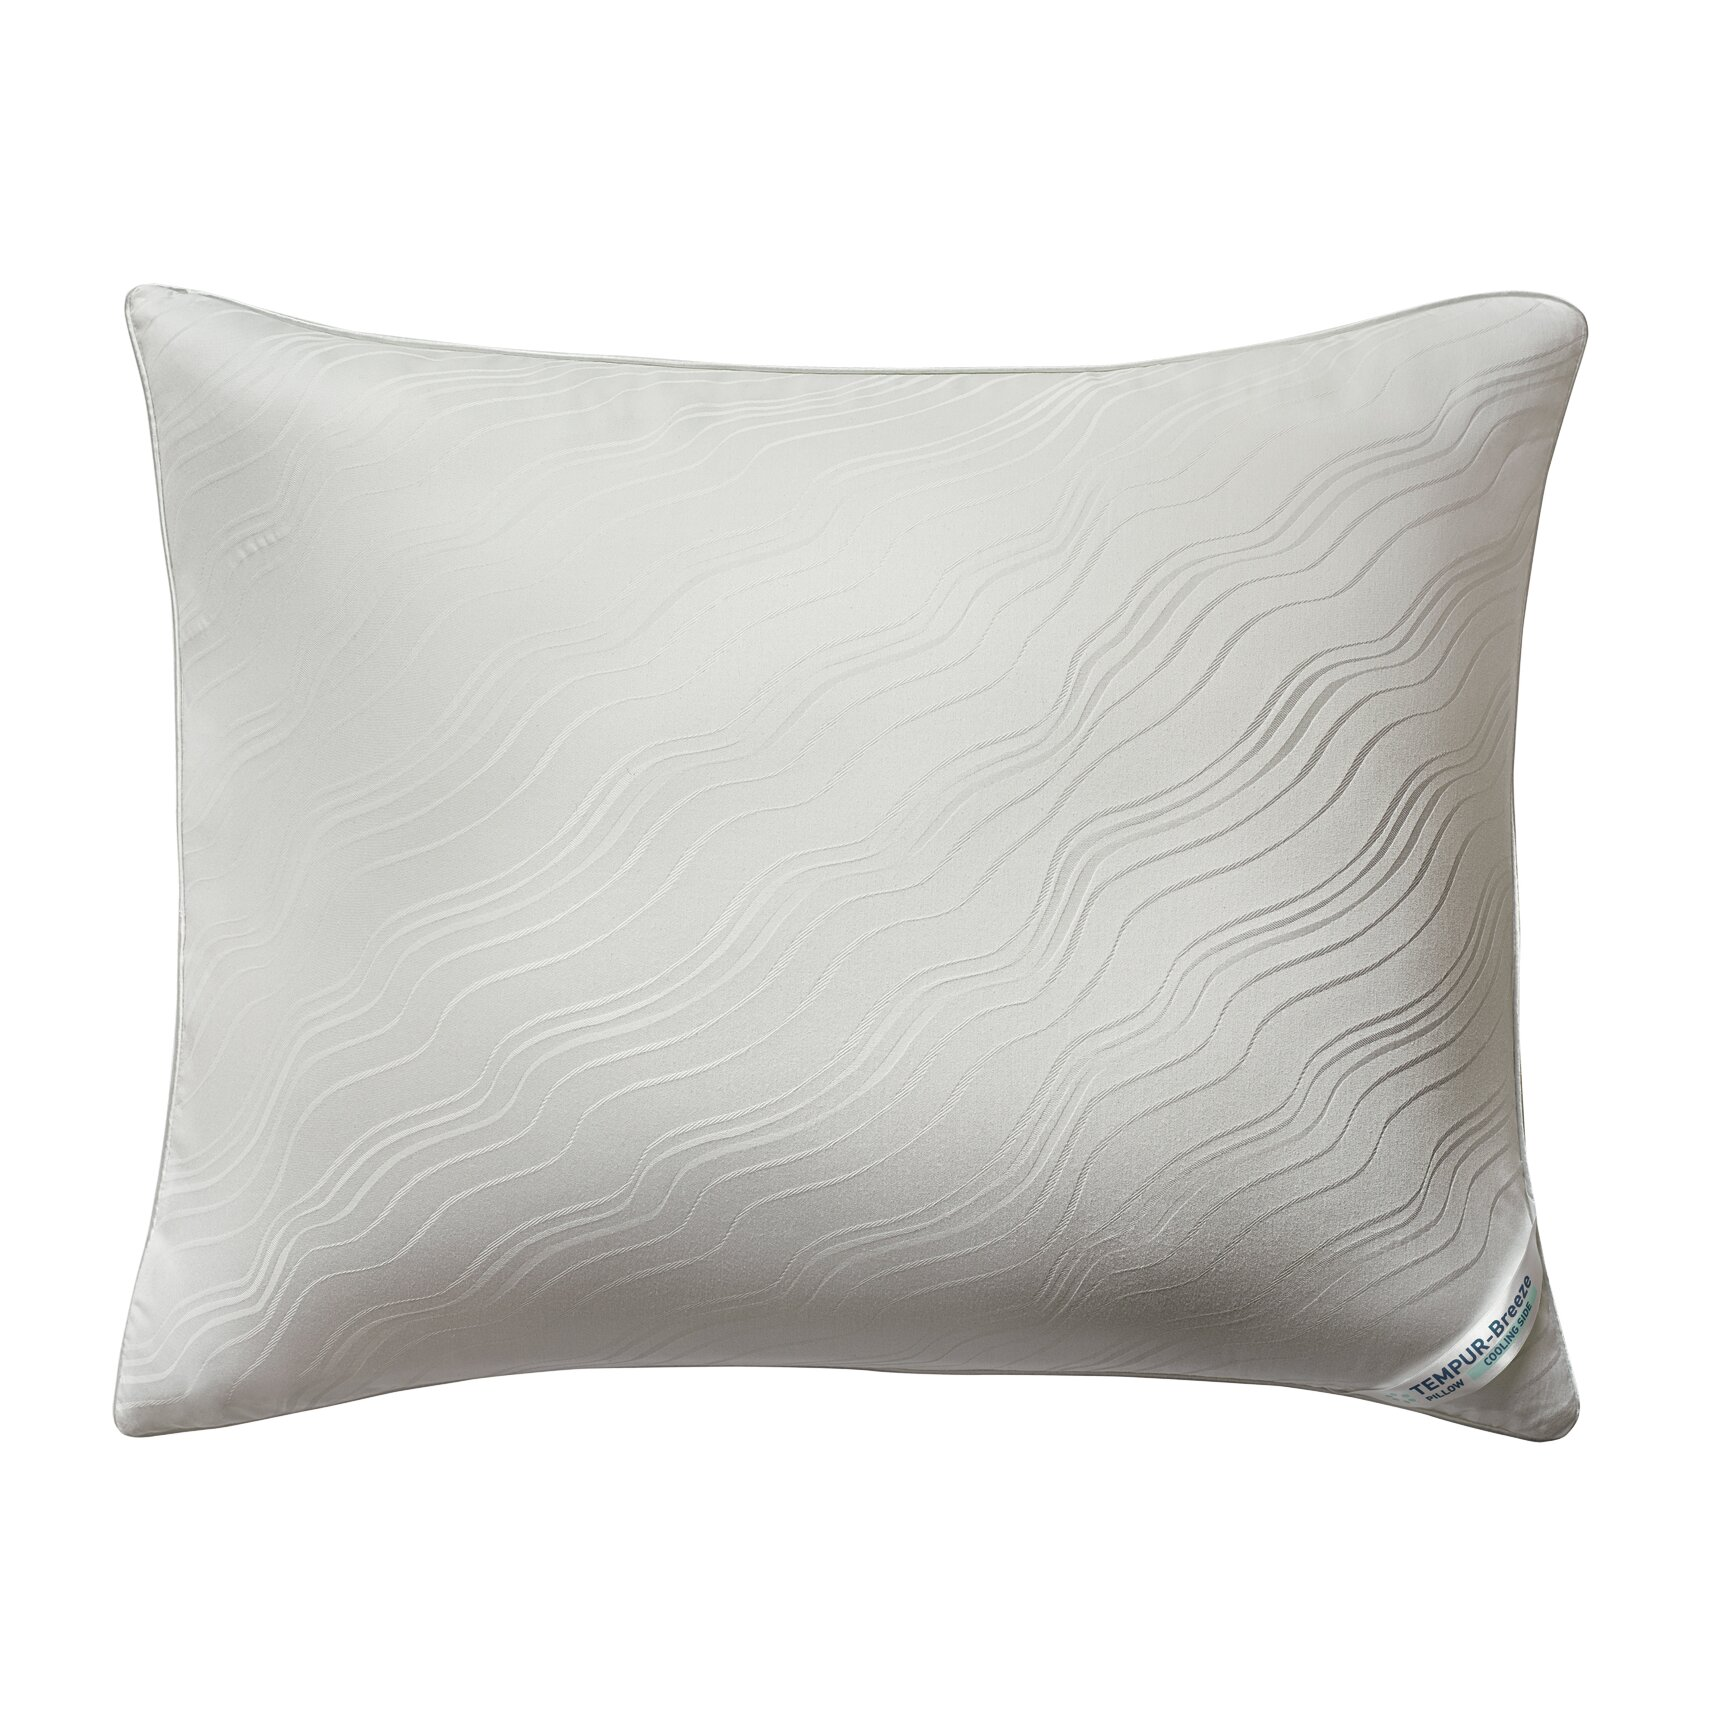 Tempur-Pedic Breeze Memory Foam Pillow & Reviews Wayfair